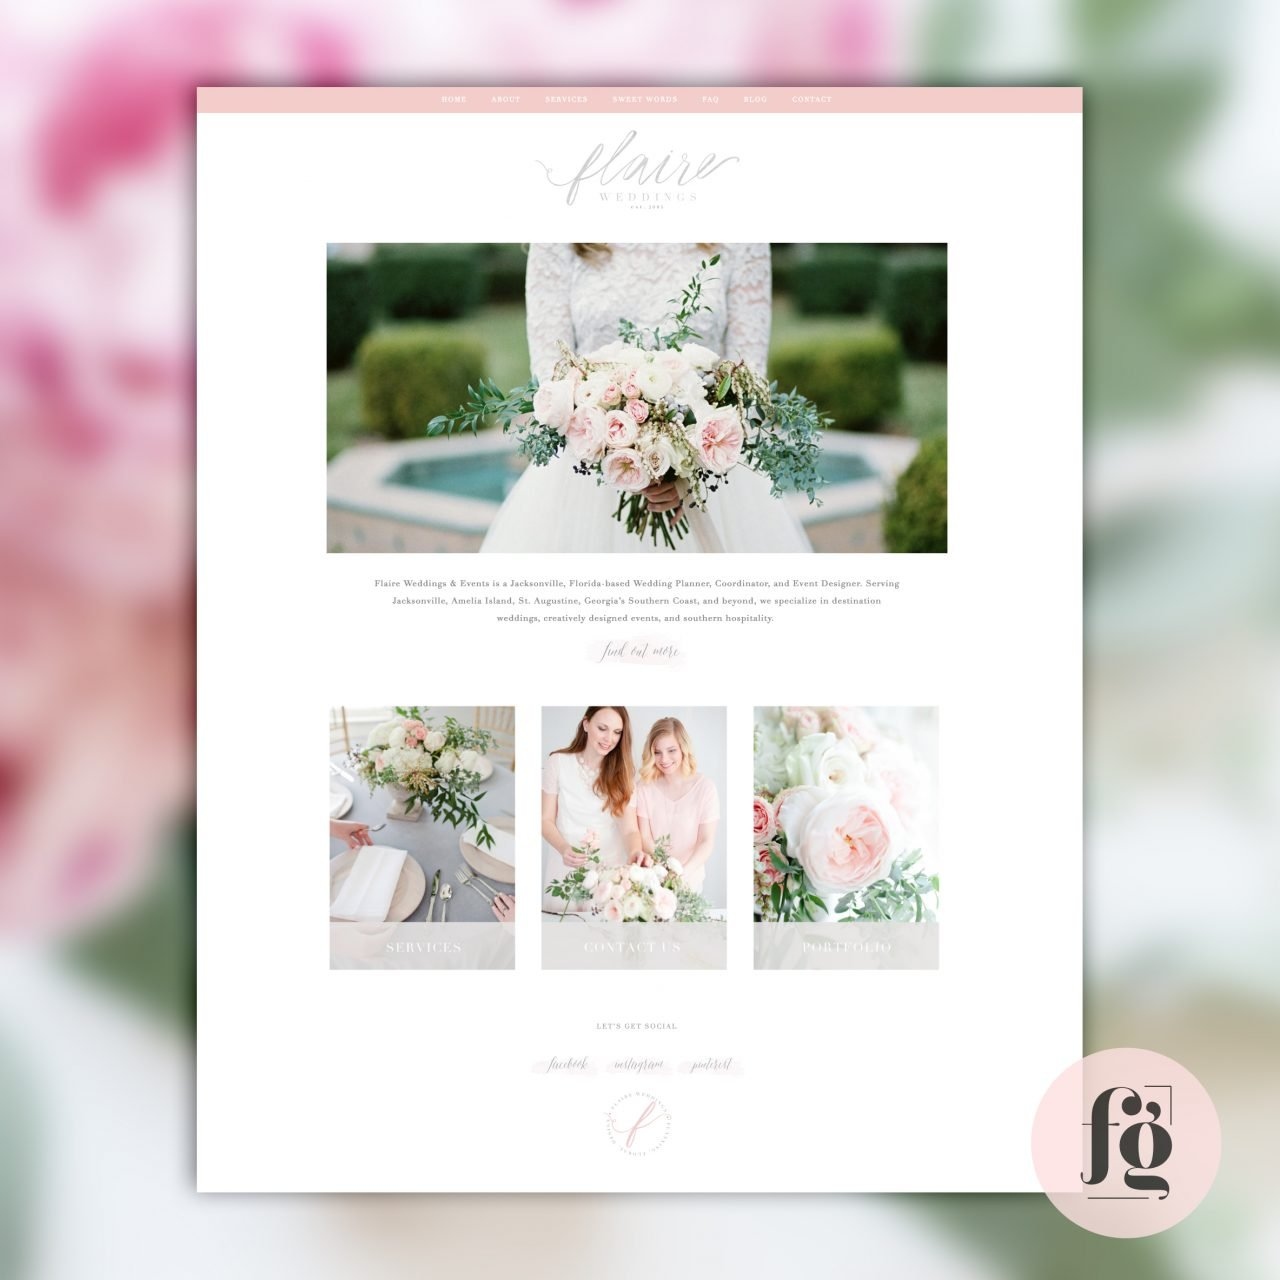 Flaire Weddings Website Homepage